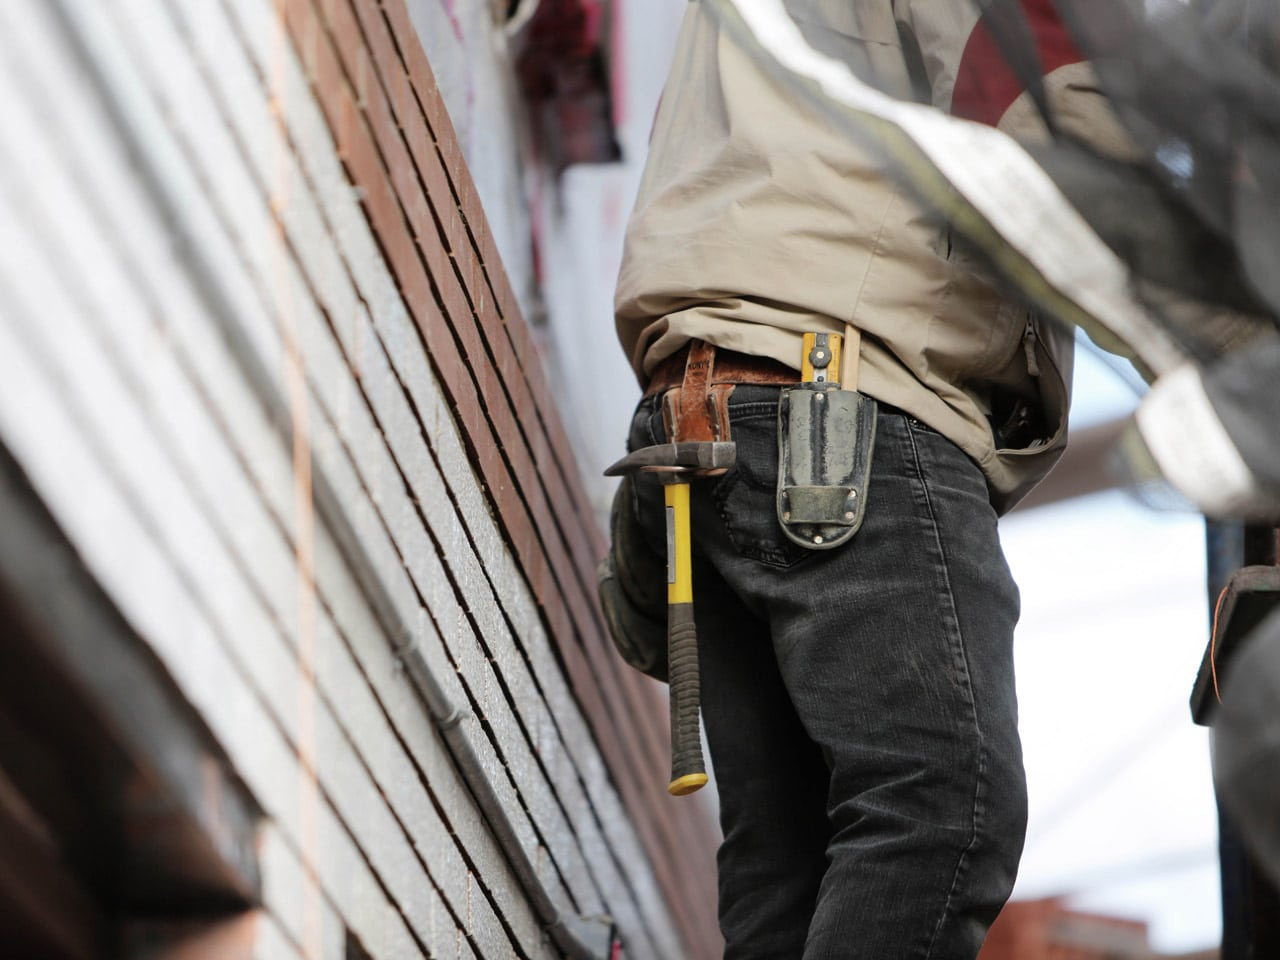 Roofers | Triad Roofing - Midwest's Leader in Roofing